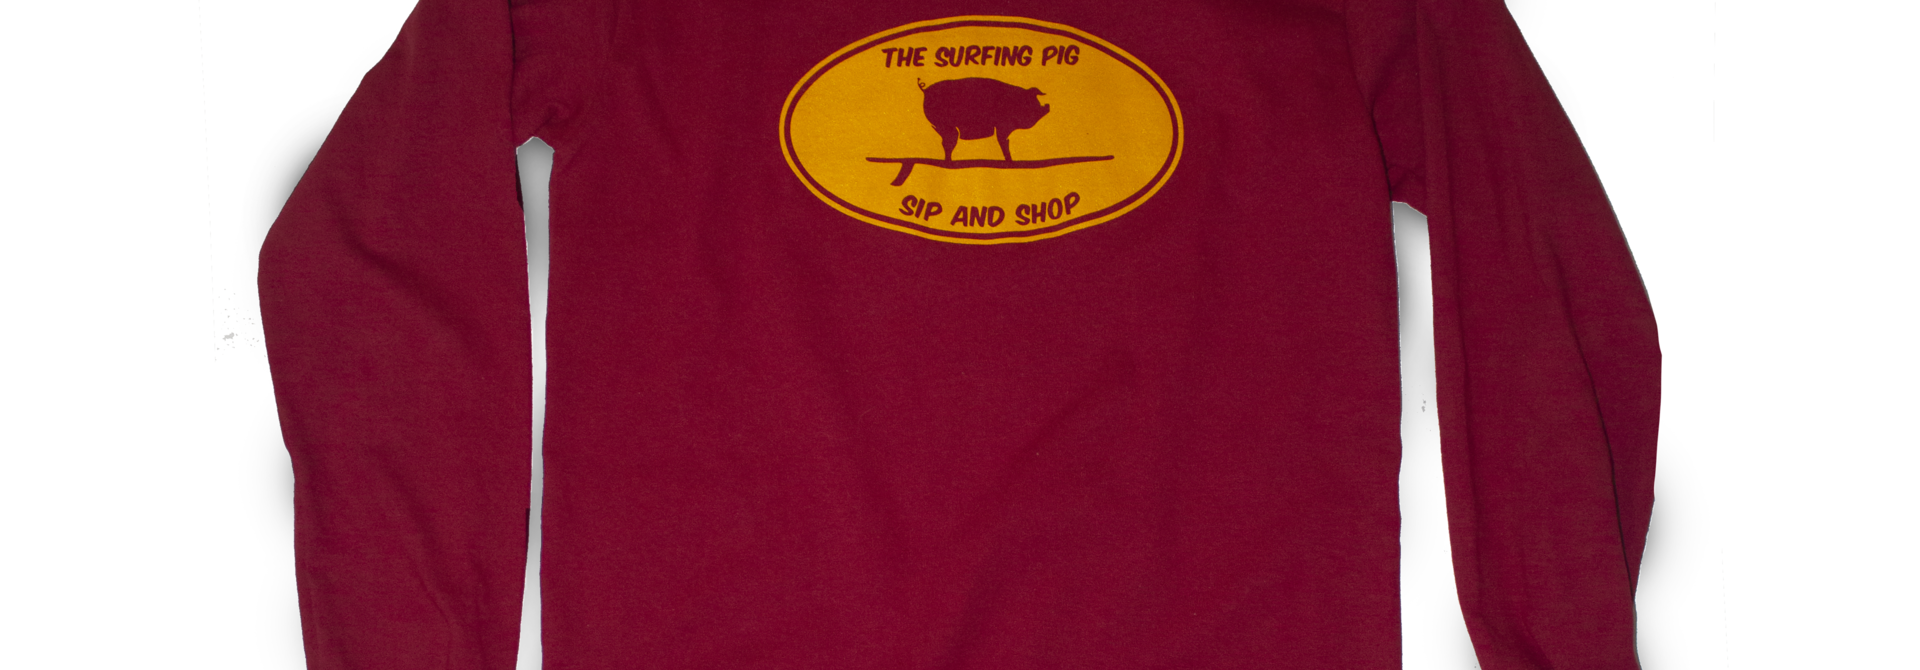 The Surfing Pig Sip and Shop Long Sleeve, Red